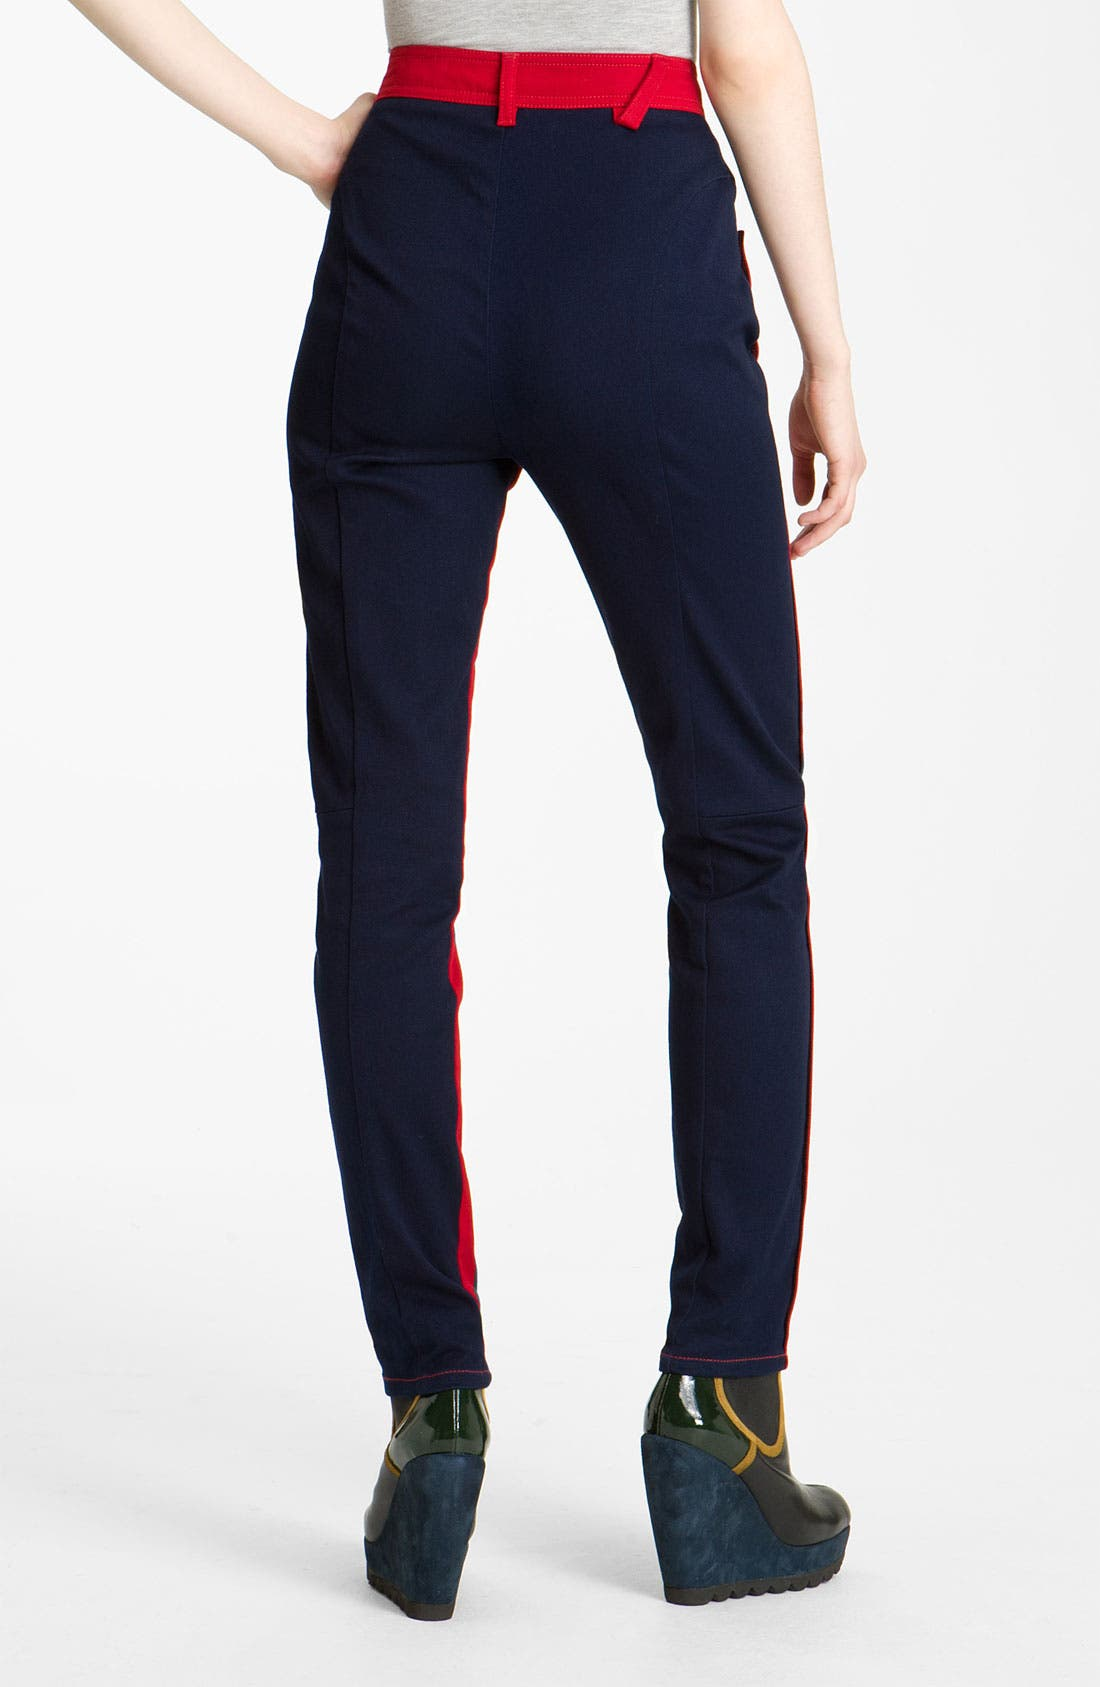 Alternate Image 1 Selected - KENZO Studded Colorblock Jeans